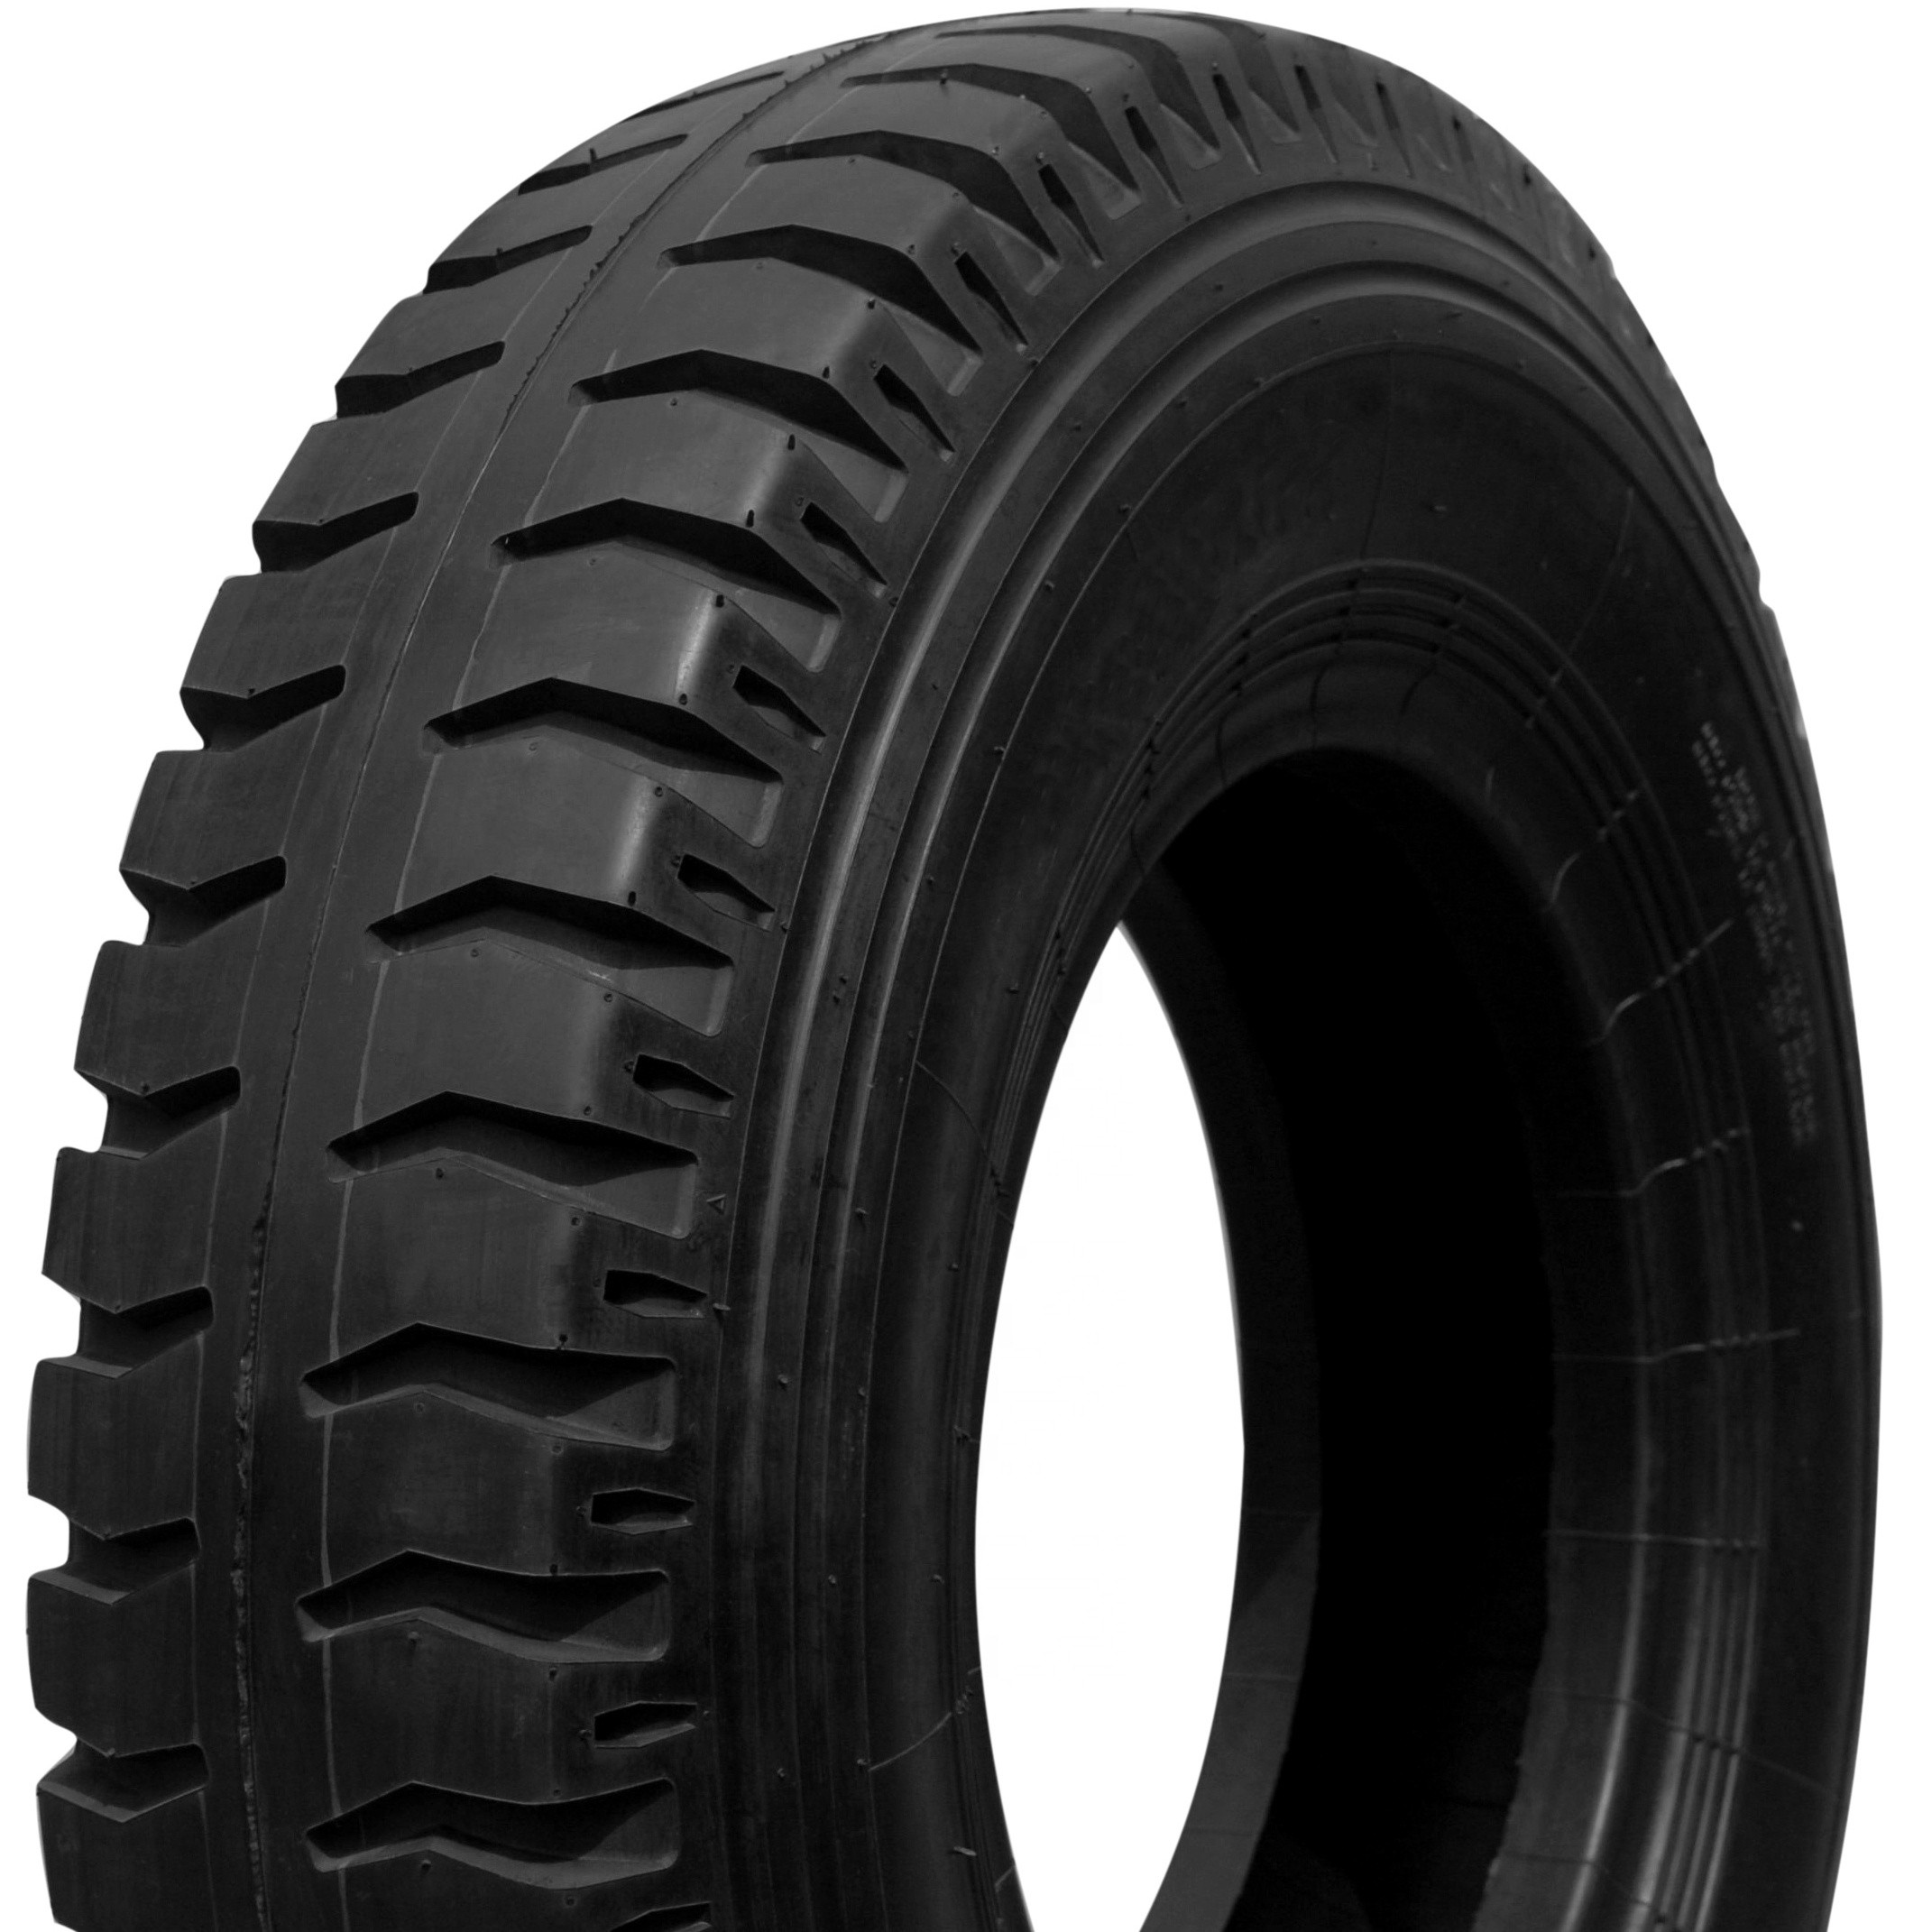 Whole sale high quality cheap price 8.25  9.00 10.00 11.00 12.00-20 Bias truck tires